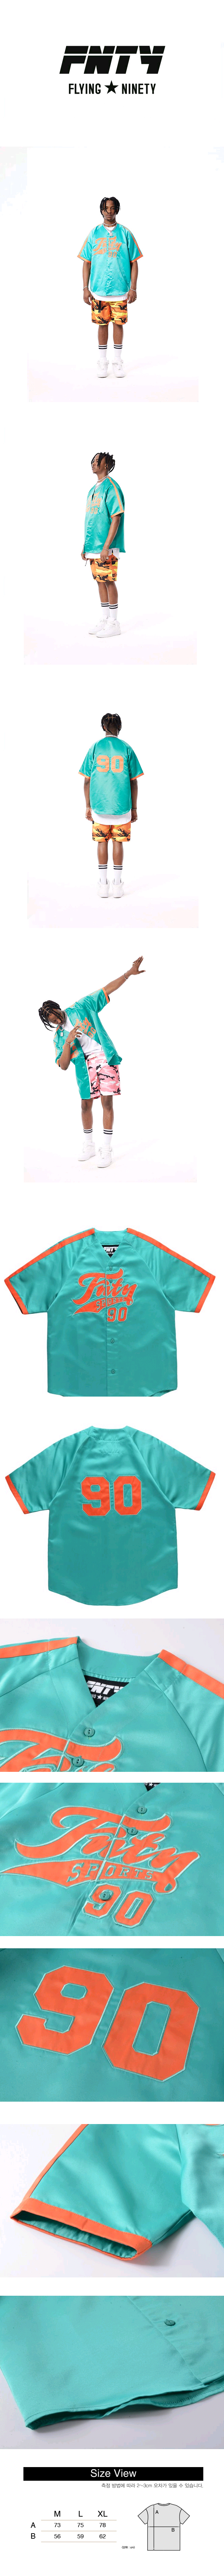 FNTY Satin Baseball Jersey Mint